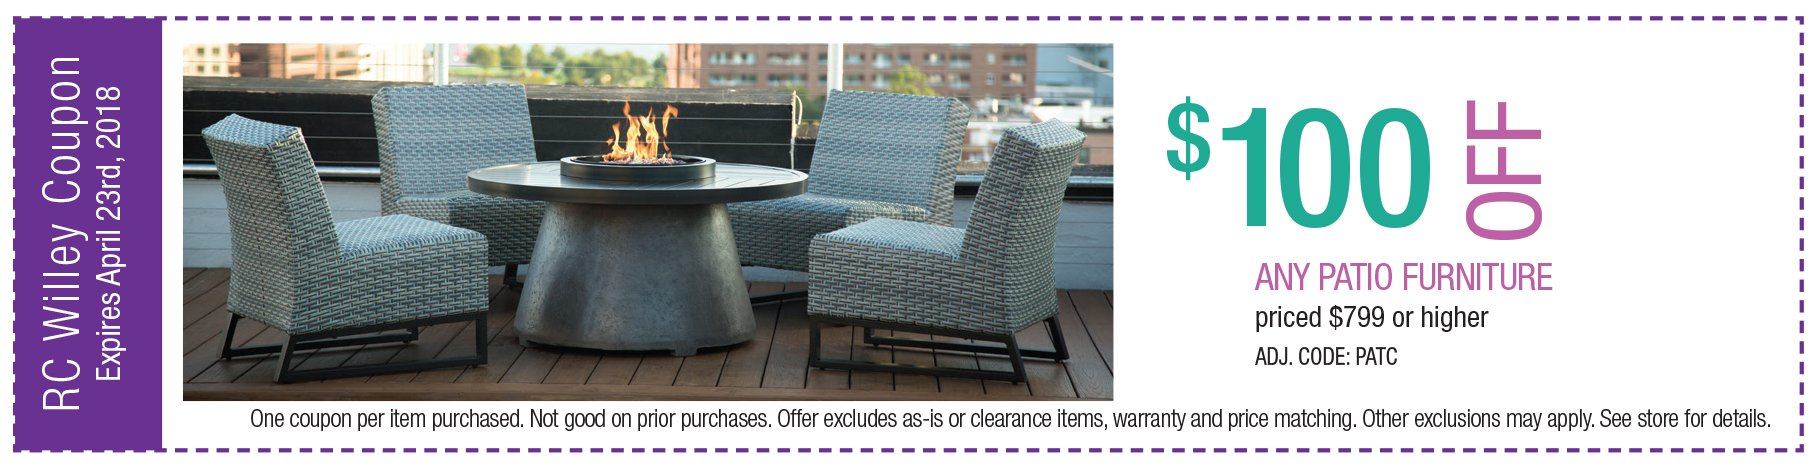 $100 off Patio Furniture $799 or higher